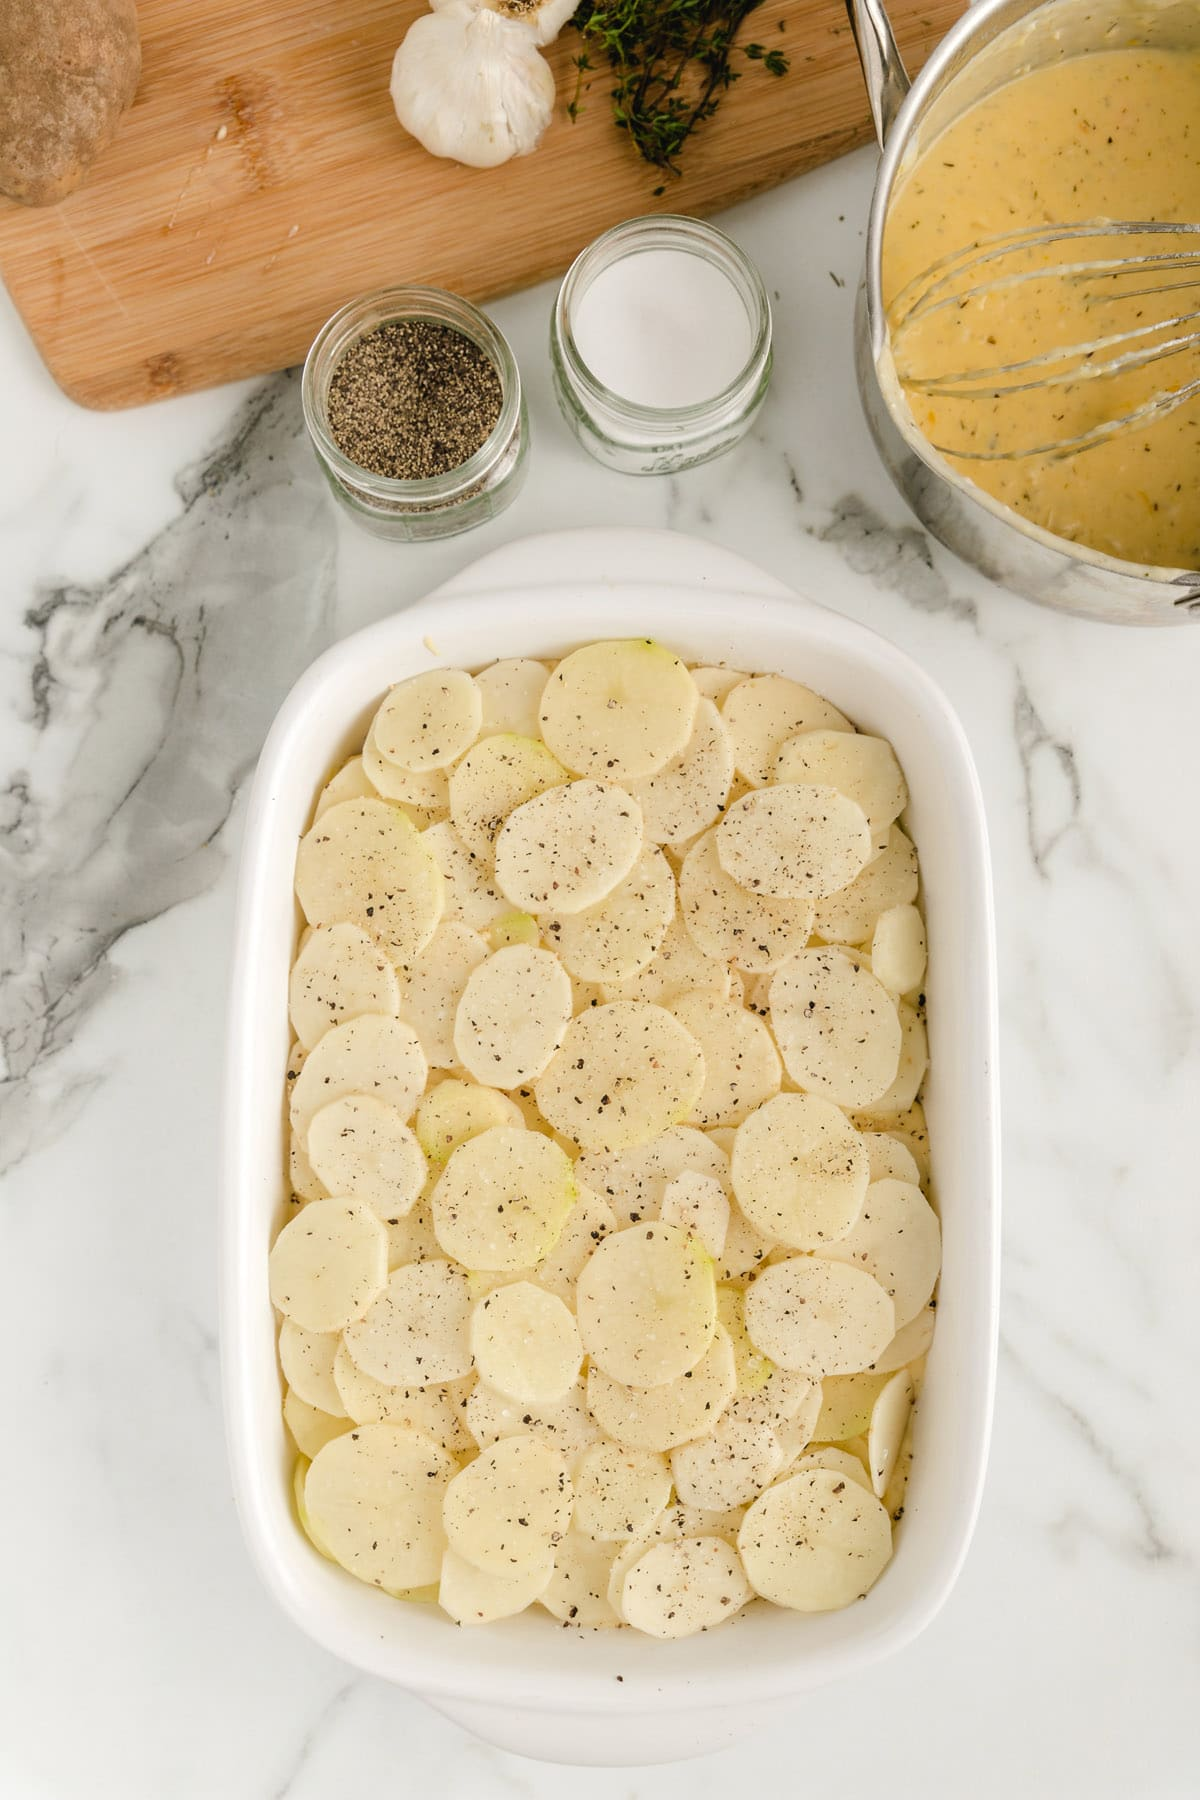 add second layer of potatoes